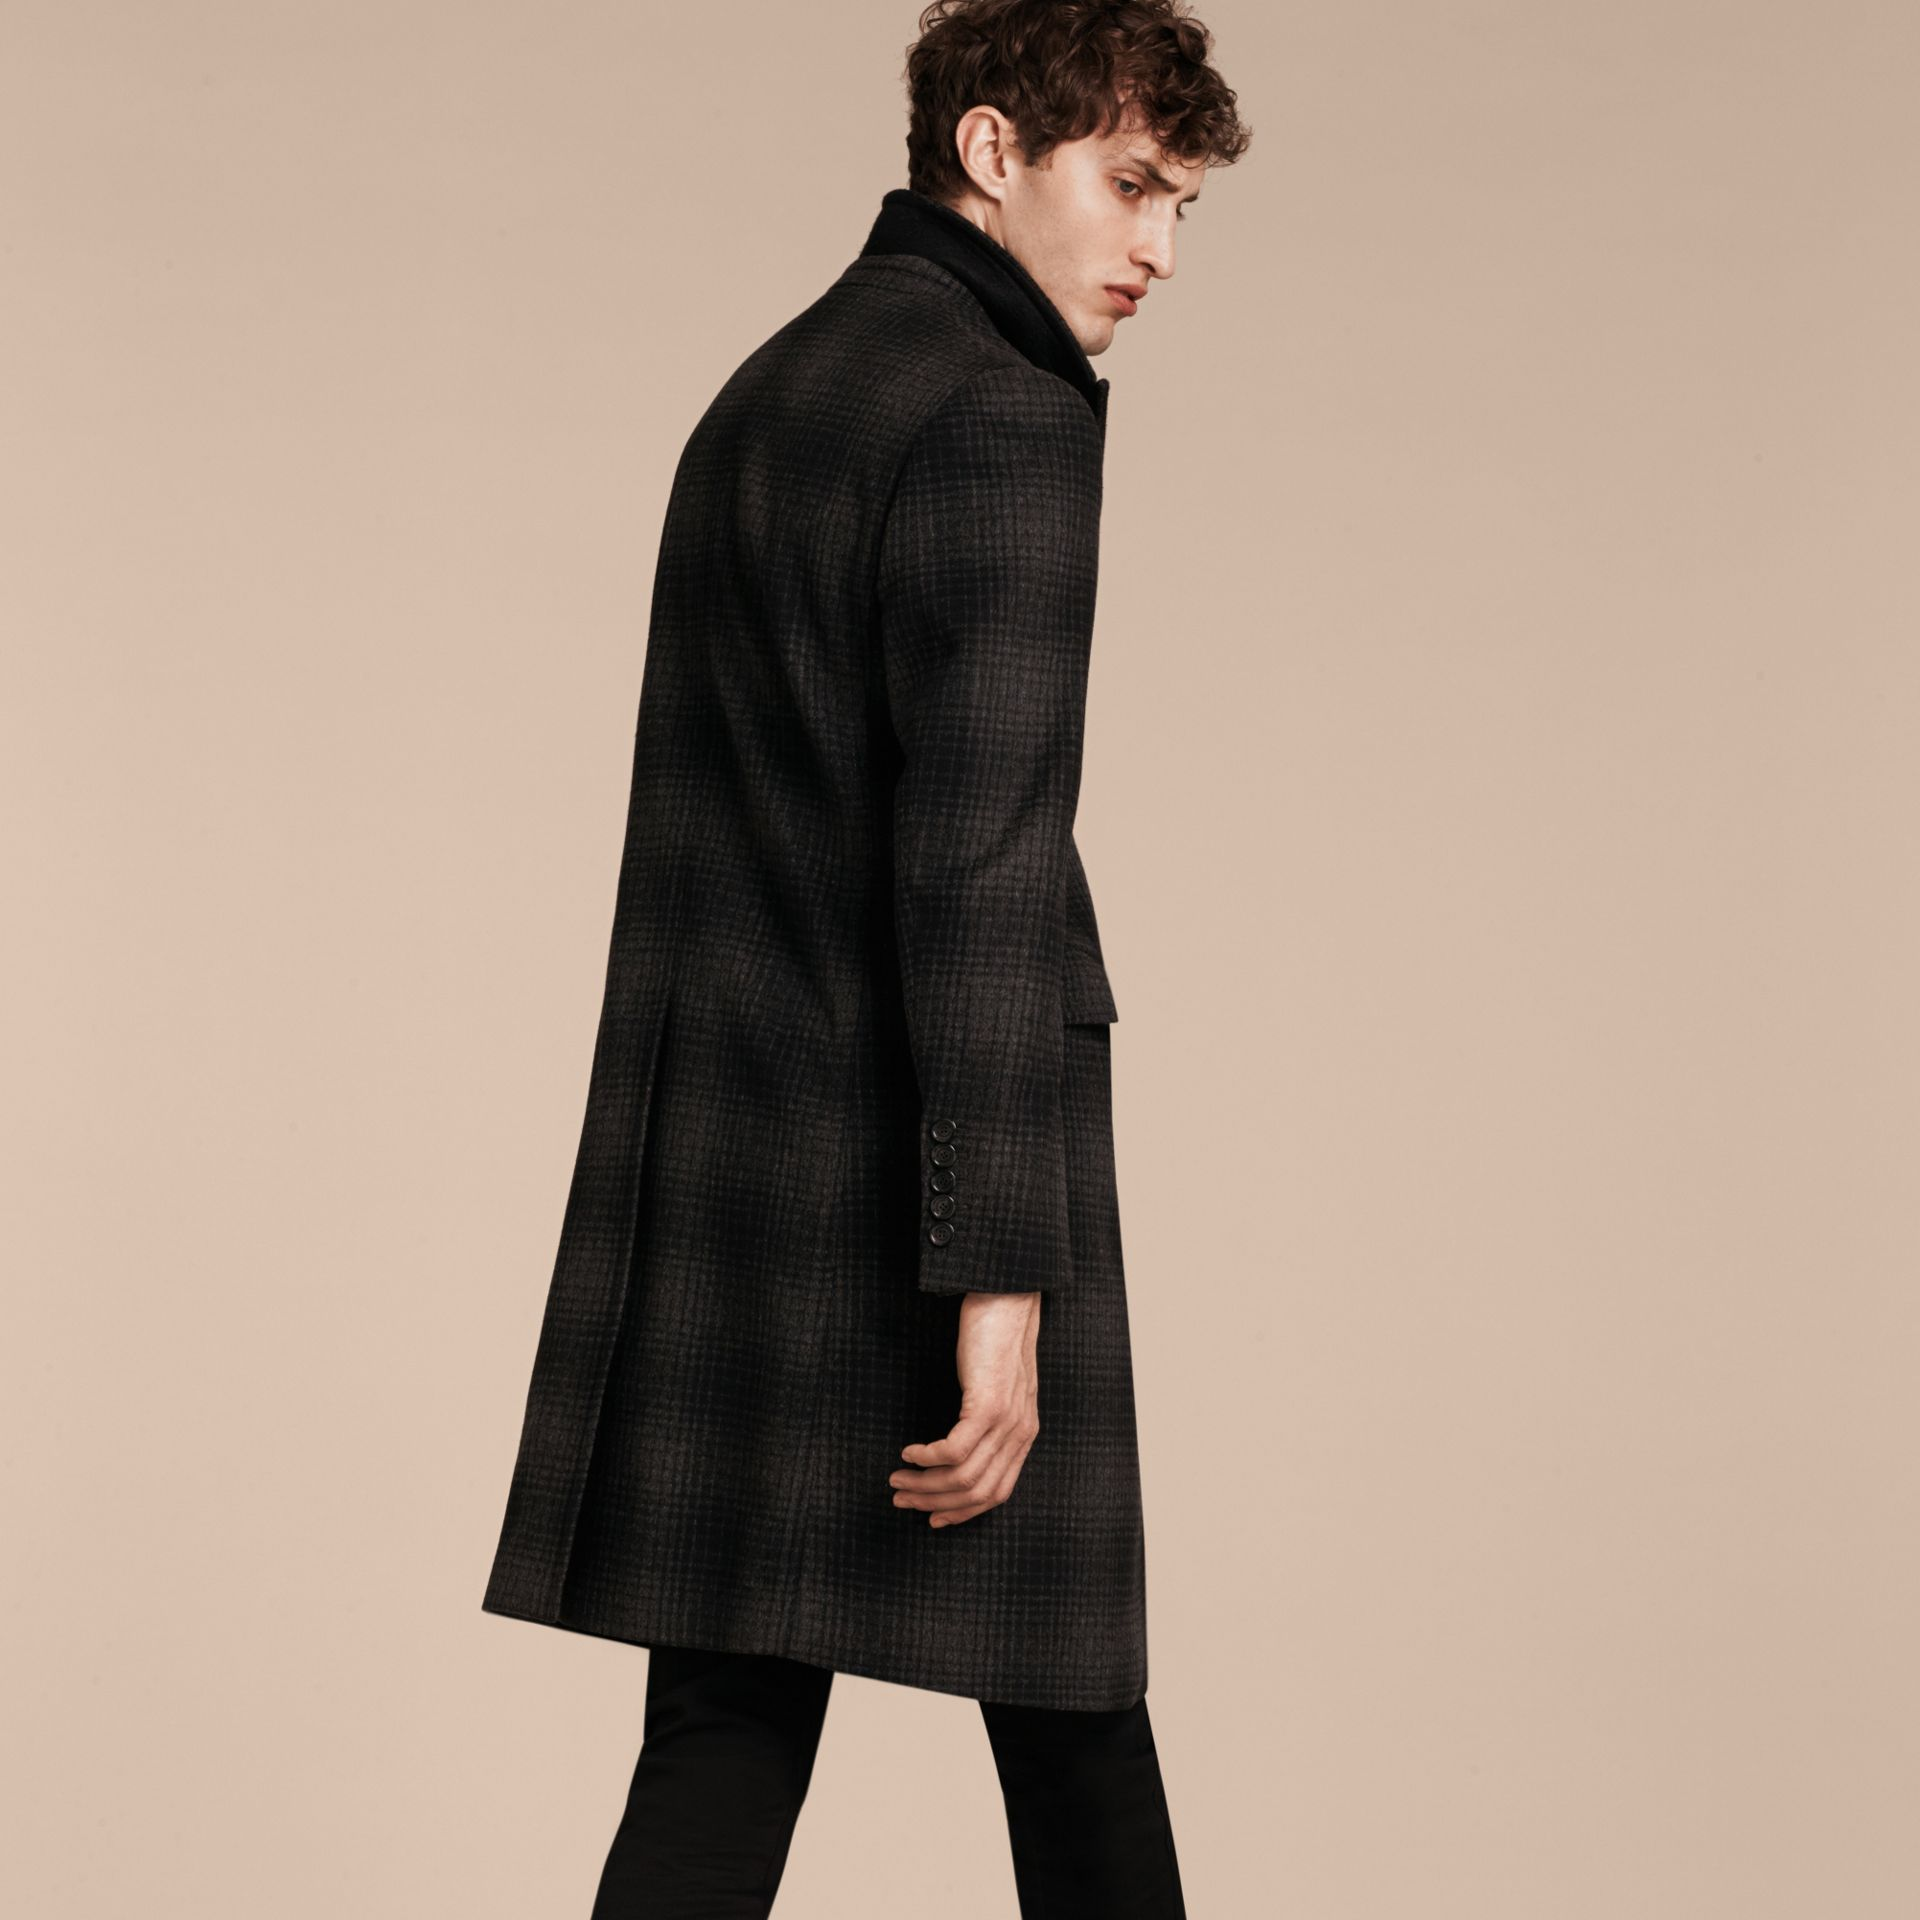 Charcoal melange Tailored Check Wool Cashmere Coat - gallery image 3